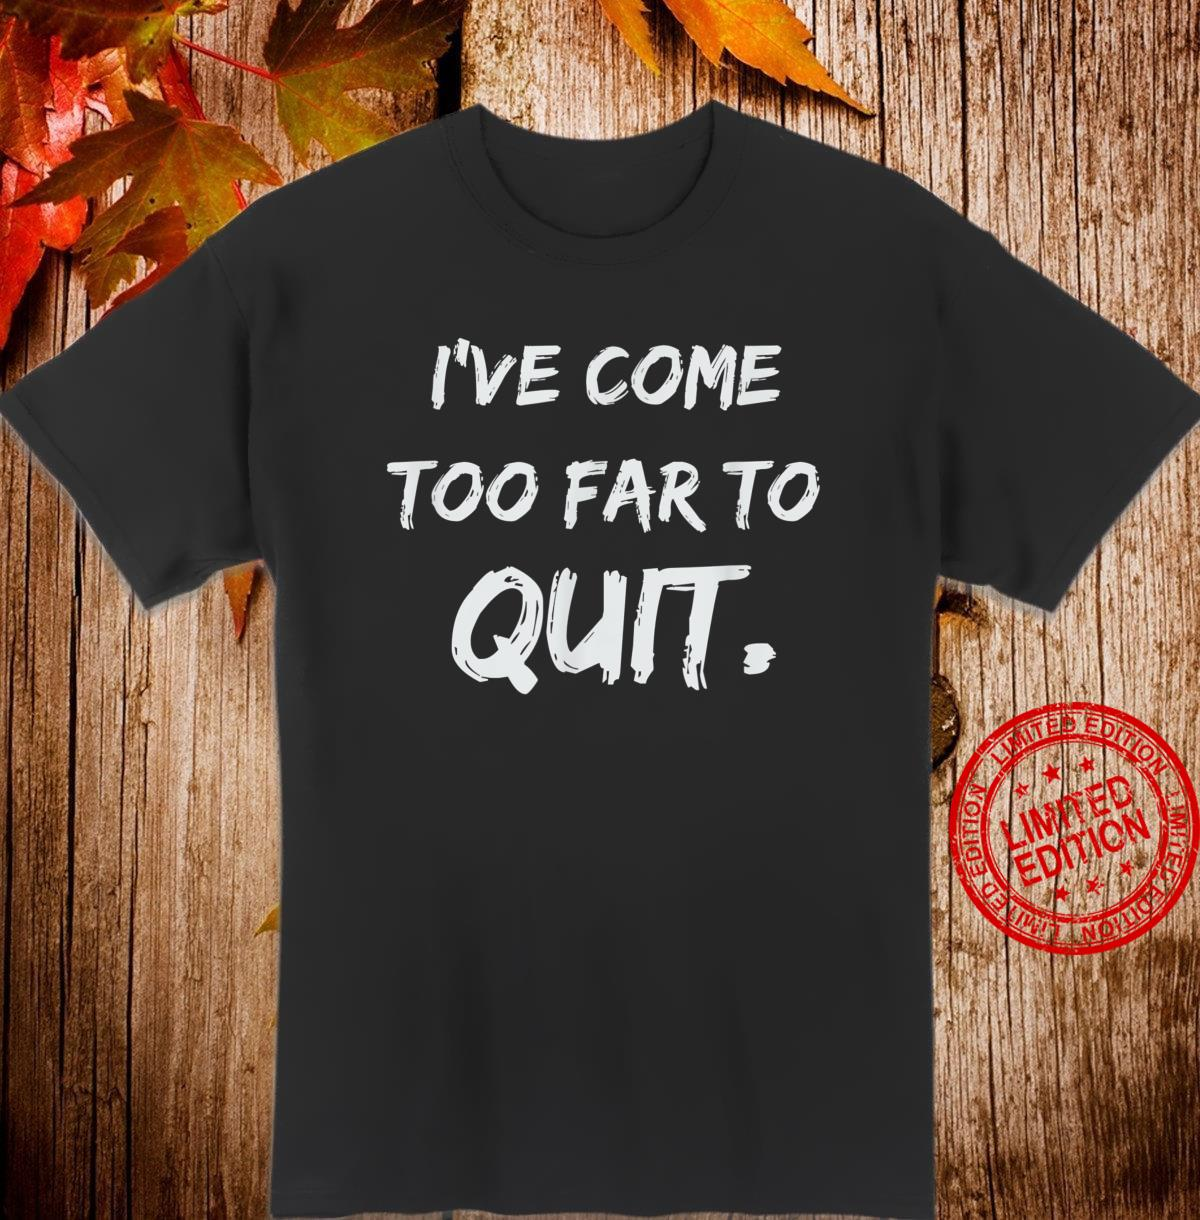 I've come too far to quit. Shirt